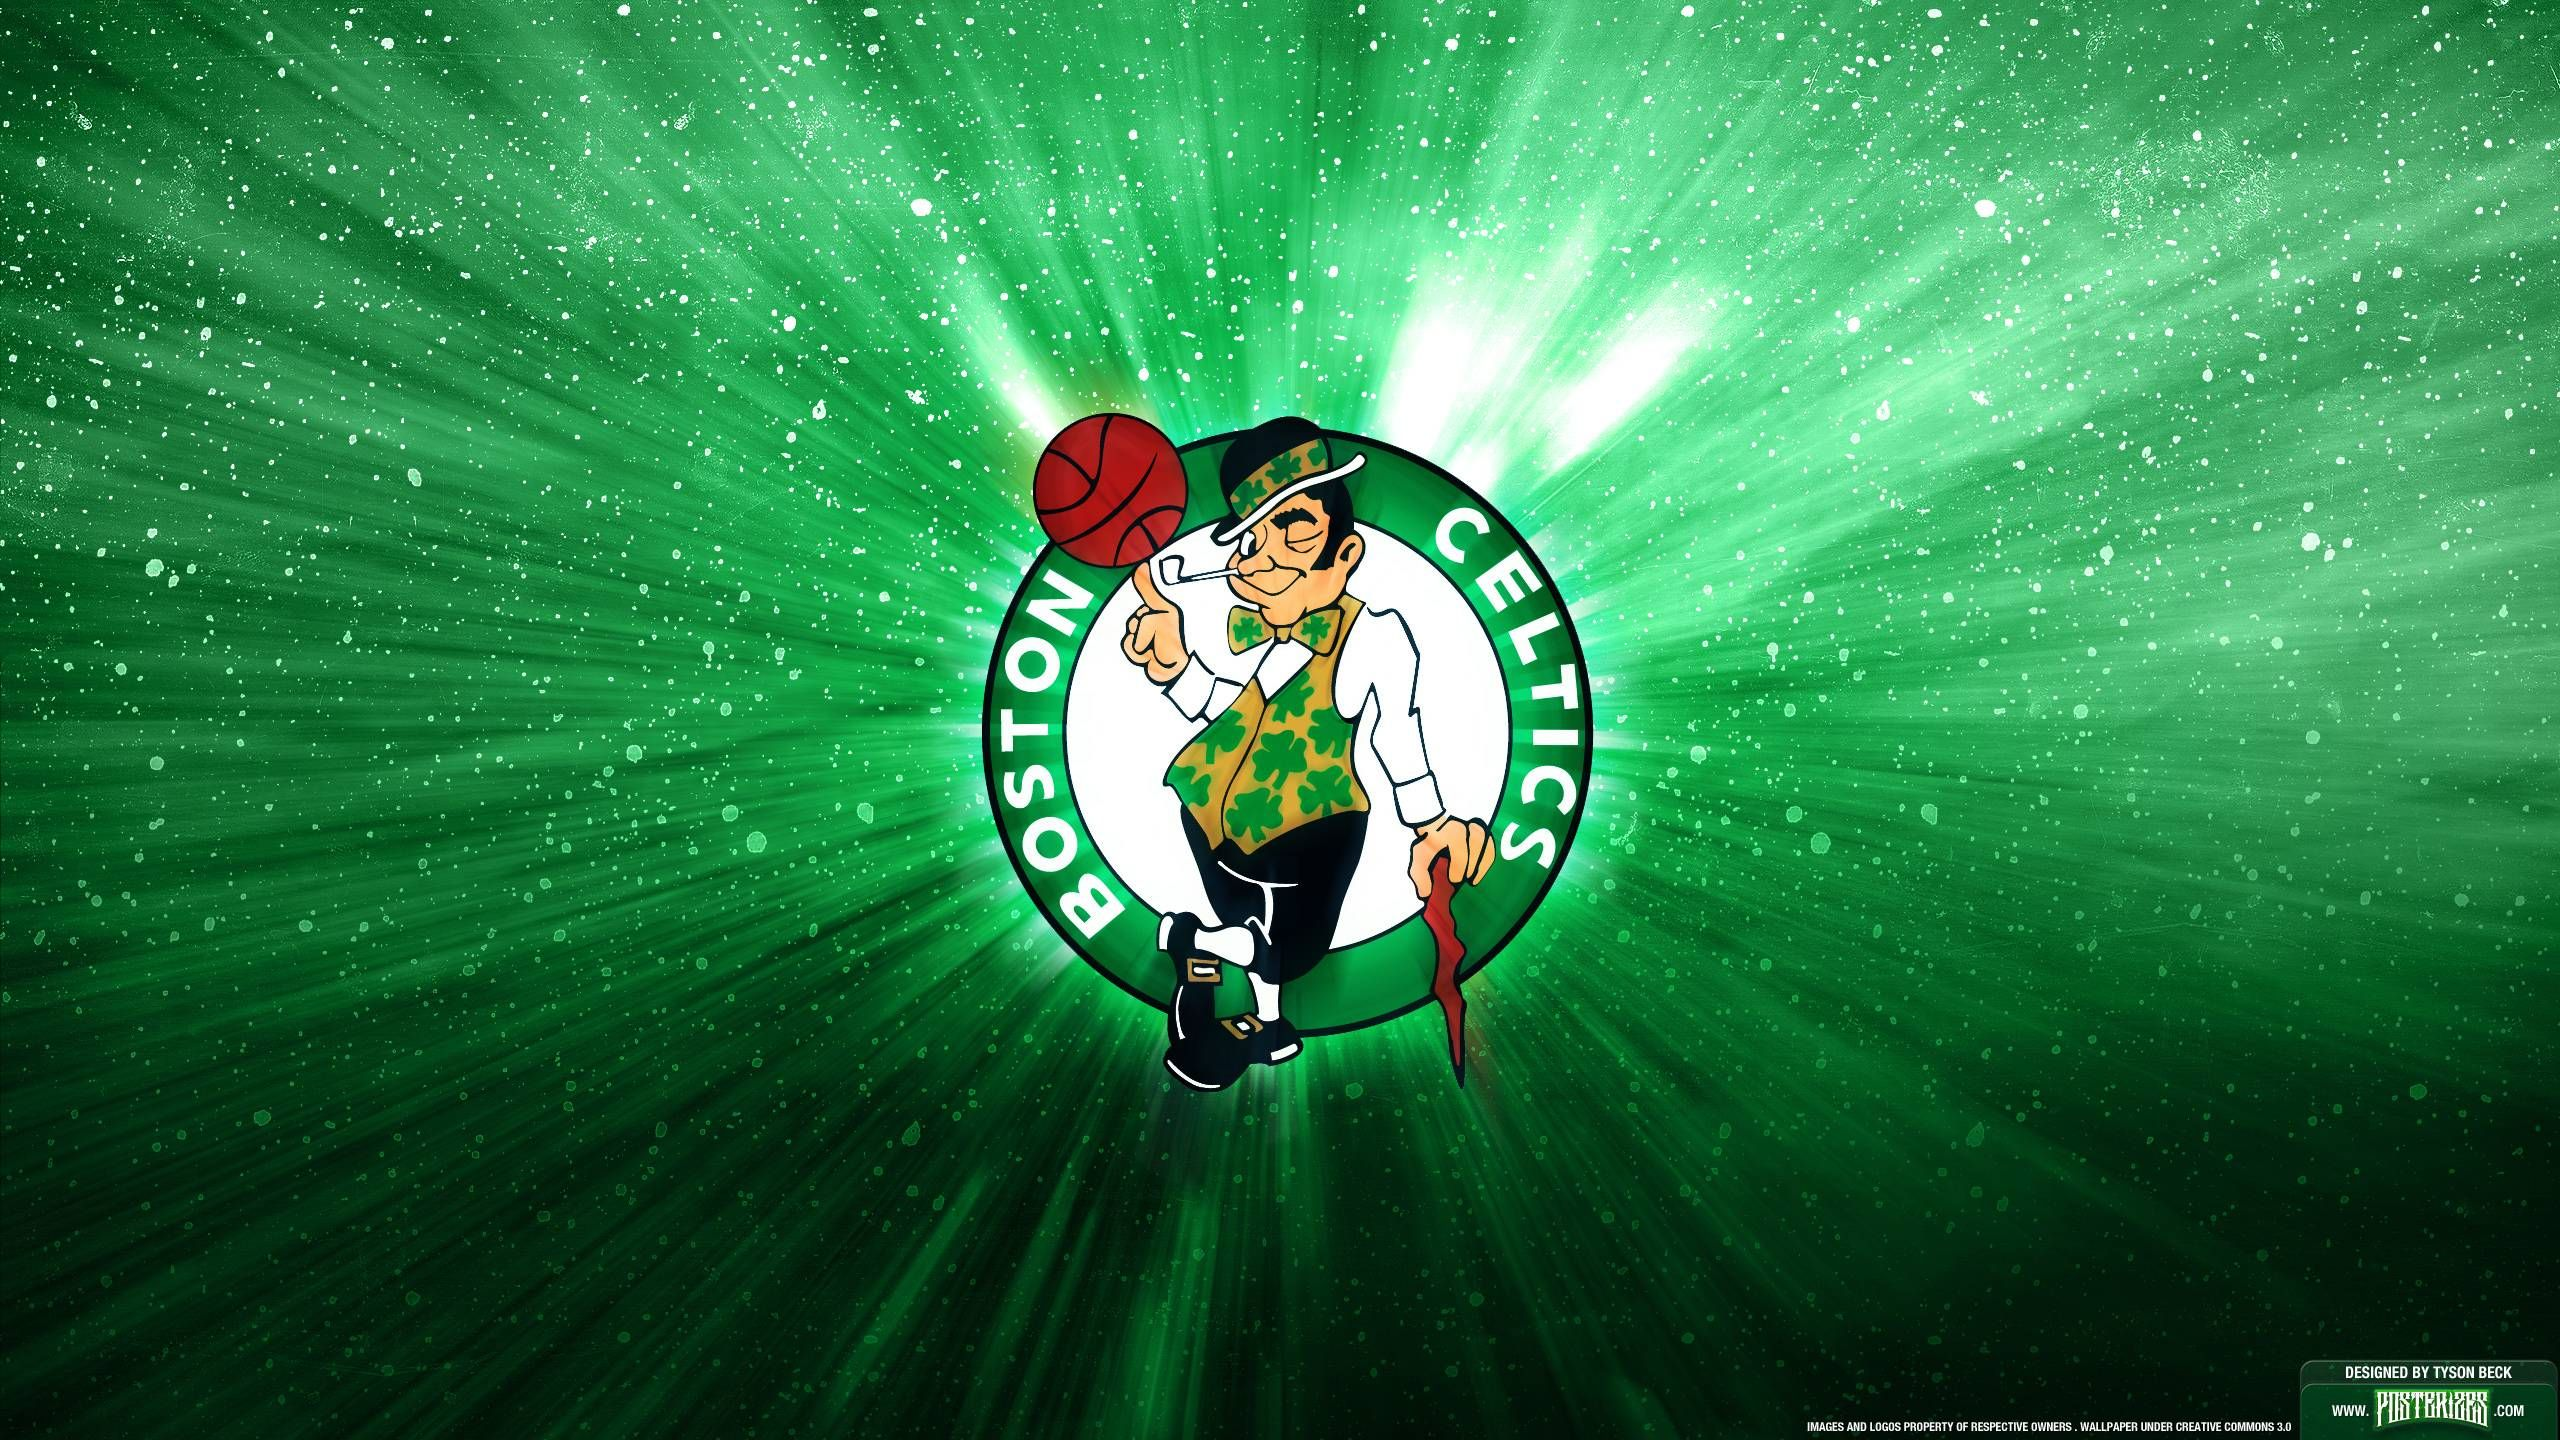 Cool Celtics Wallpaper Boston celtics logo, Boston